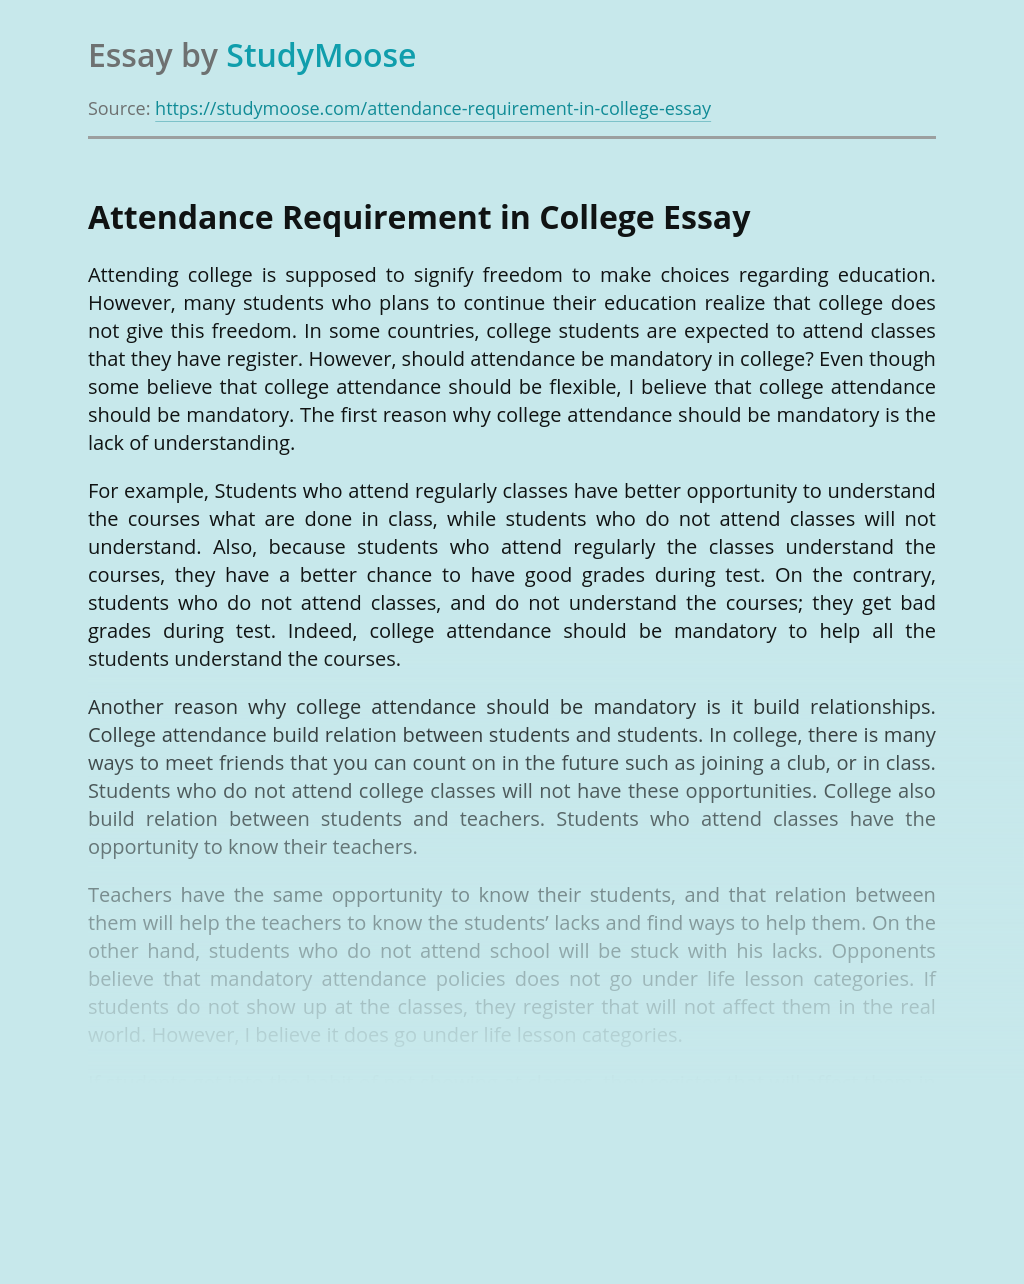 Attendance Requirement in College